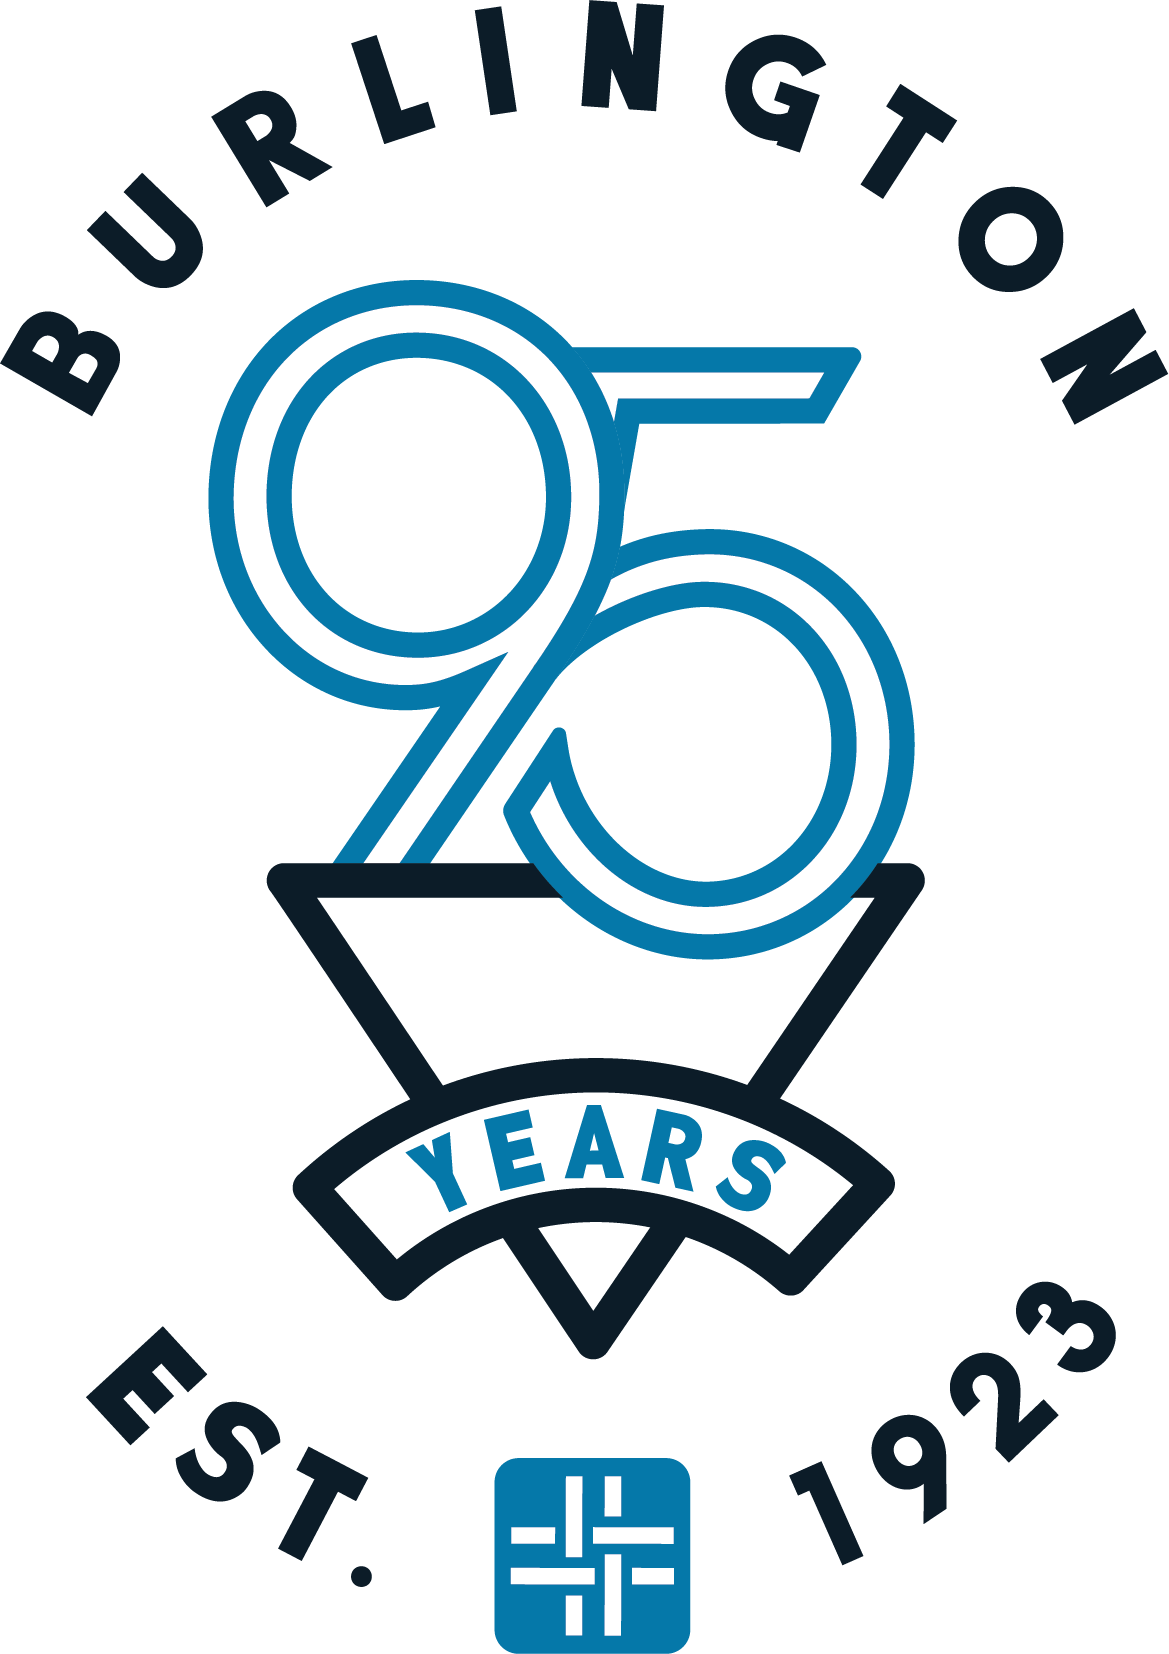 1923 Burlington Logo